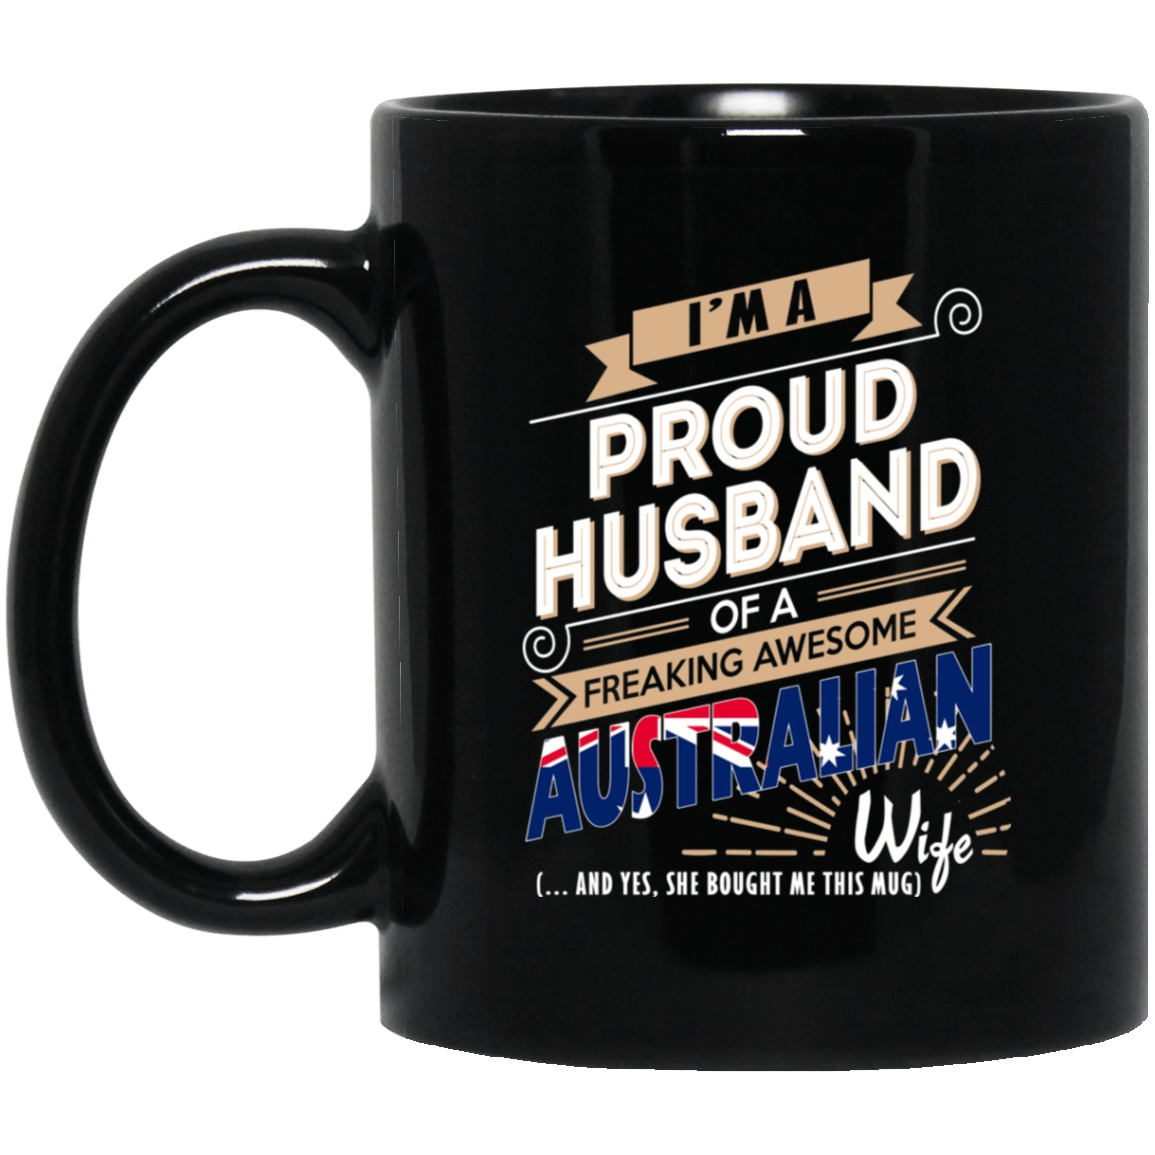 Proud Husband Of A Freaking Awesome Australian Wife Mug 1065-10181-72136609-49307 - Tee Ript